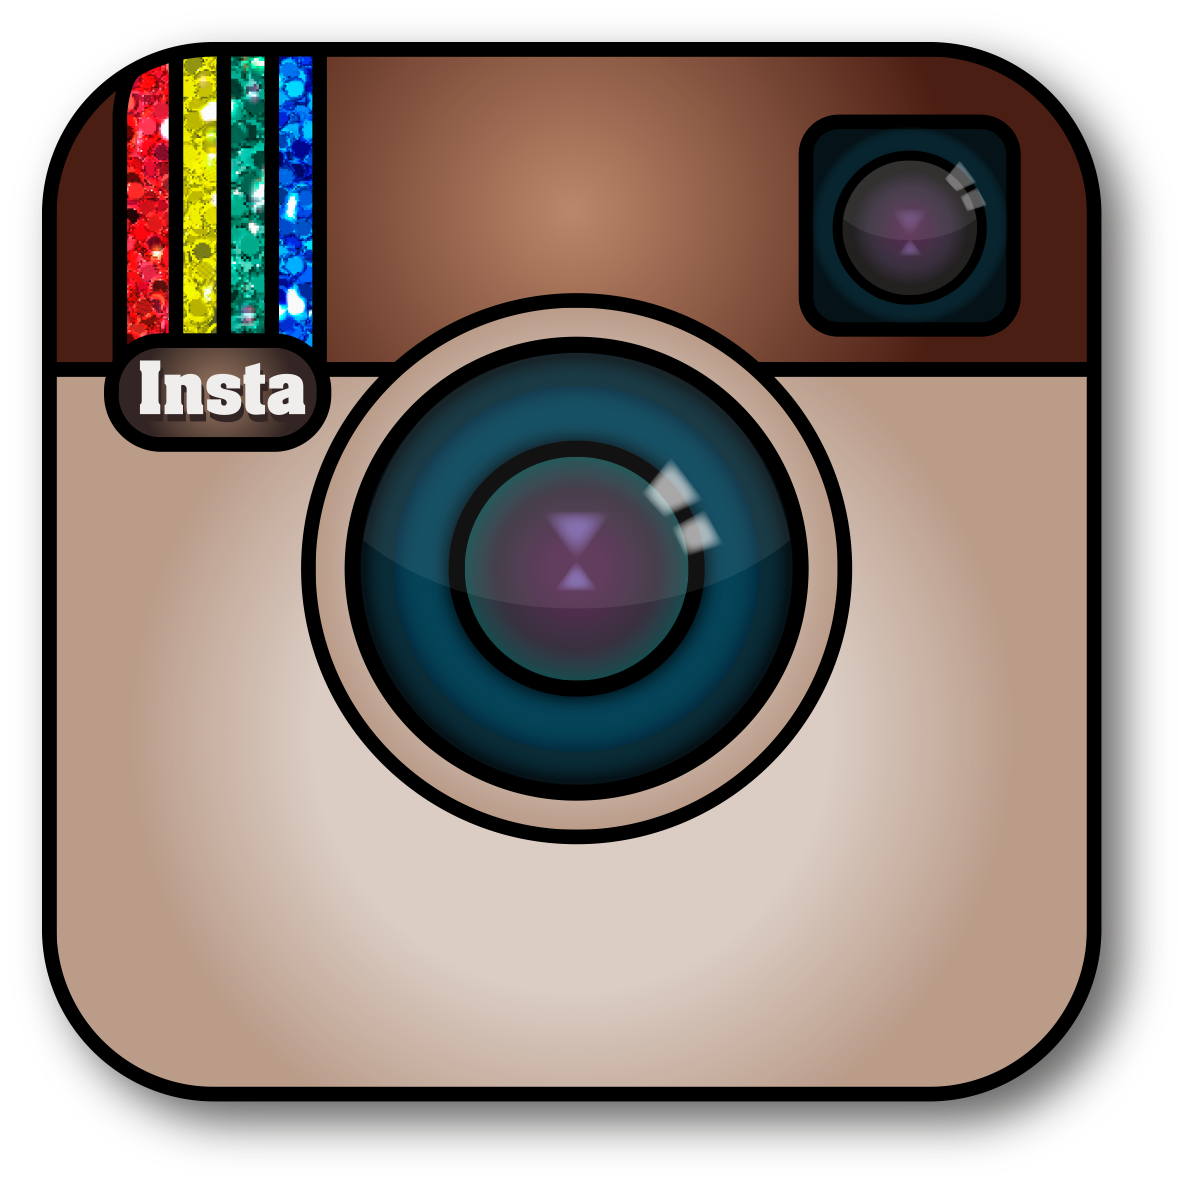 Instagram clipart instagram icon. Utilizing in the classroom